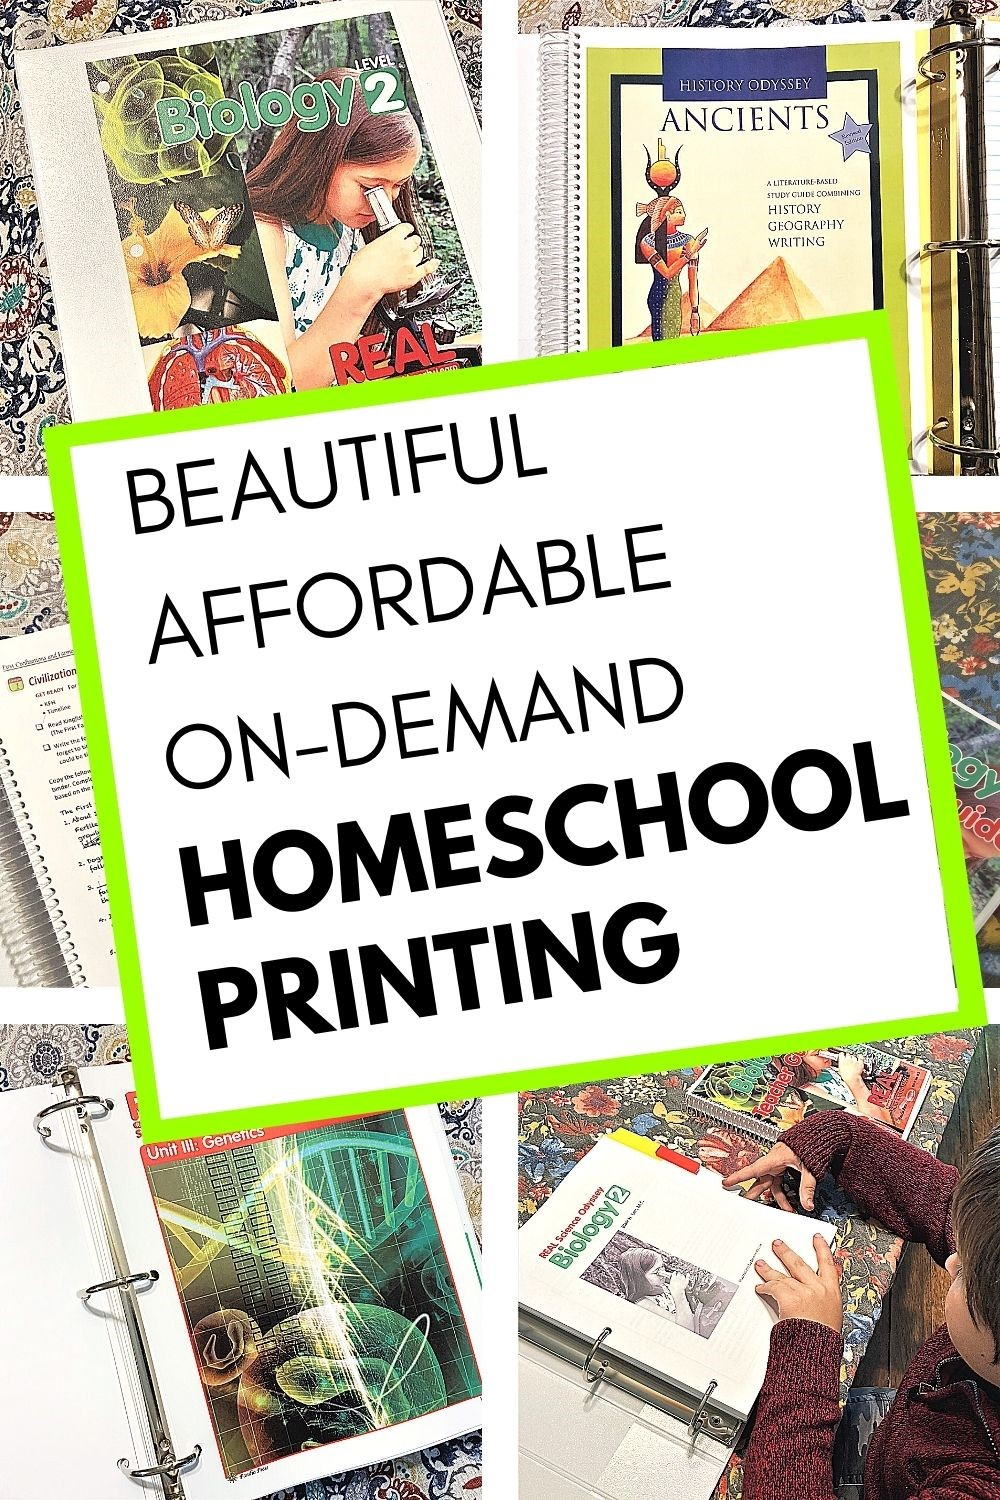 Beautiful, affordable, on-demand homeschool printing by Family Nest Printing.